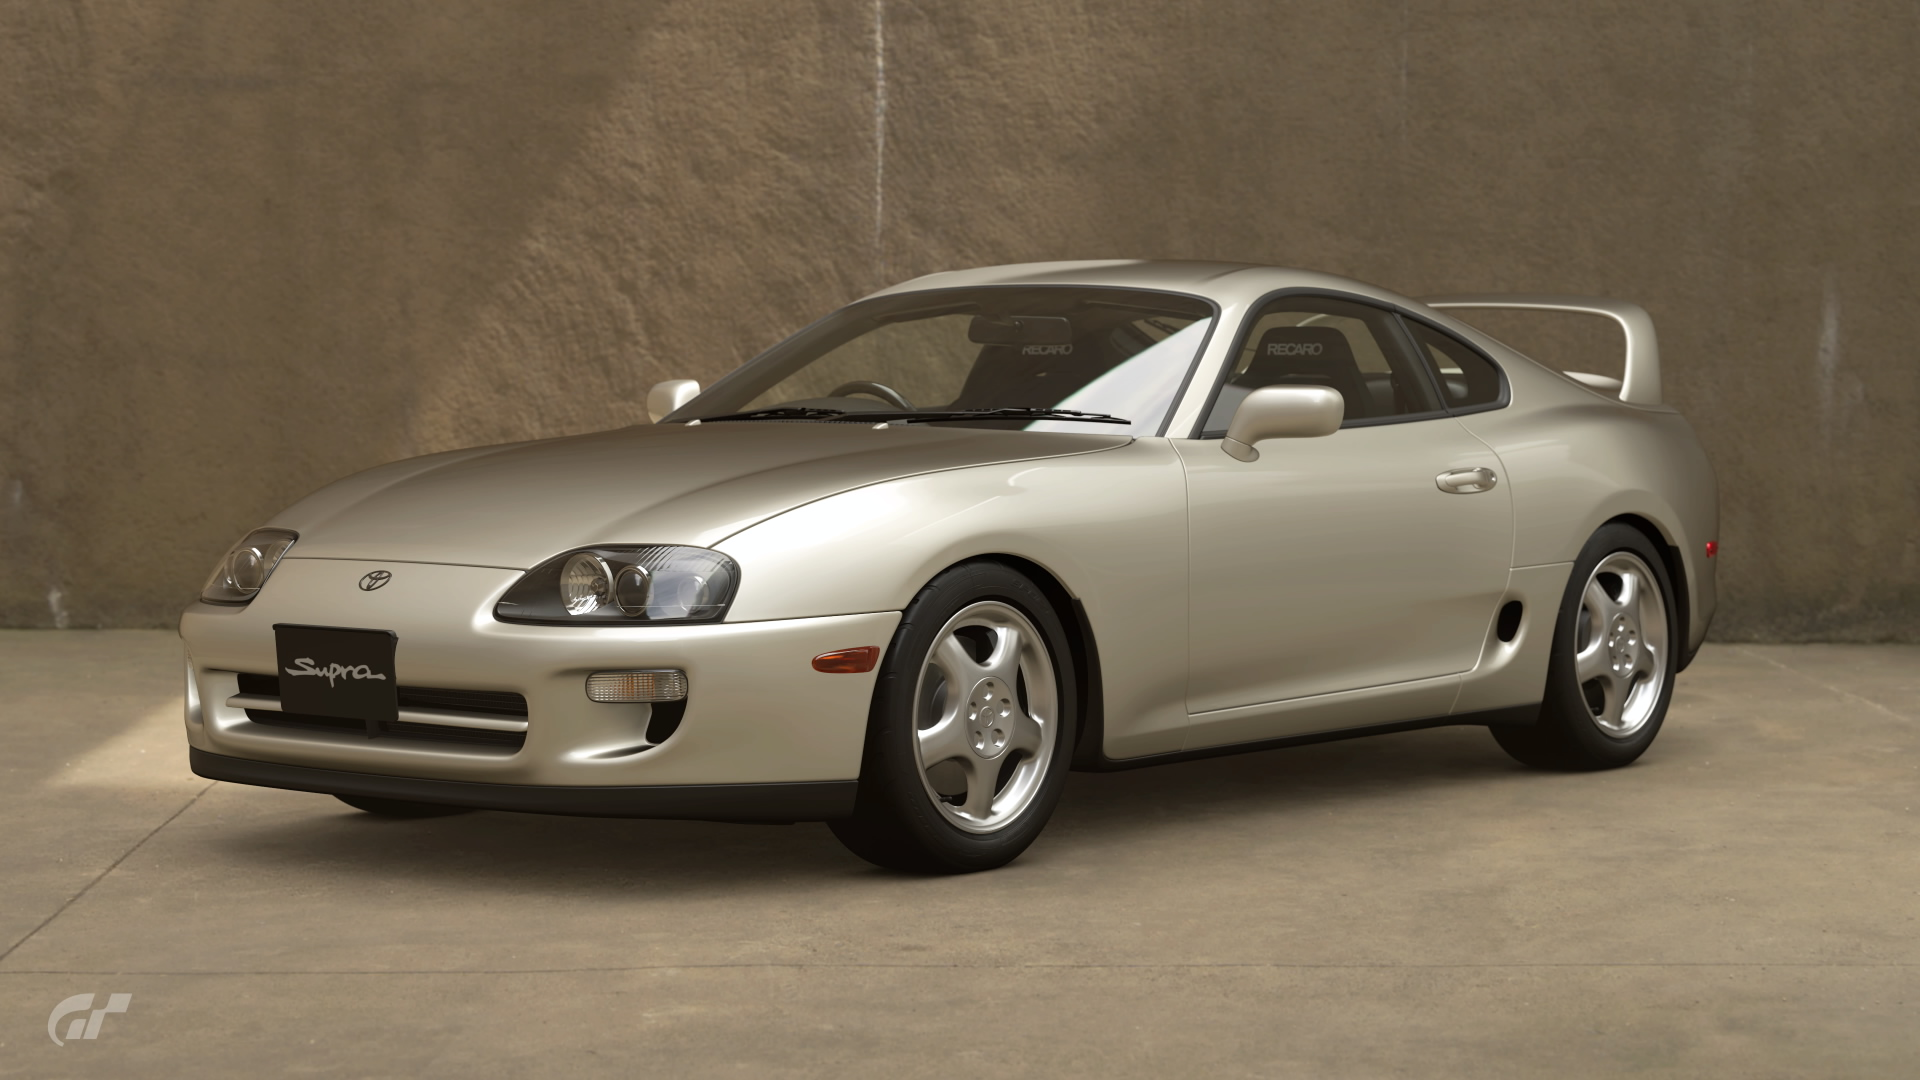 toyota supra rz 39 97 gran turismo wiki fandom powered by wikia. Black Bedroom Furniture Sets. Home Design Ideas